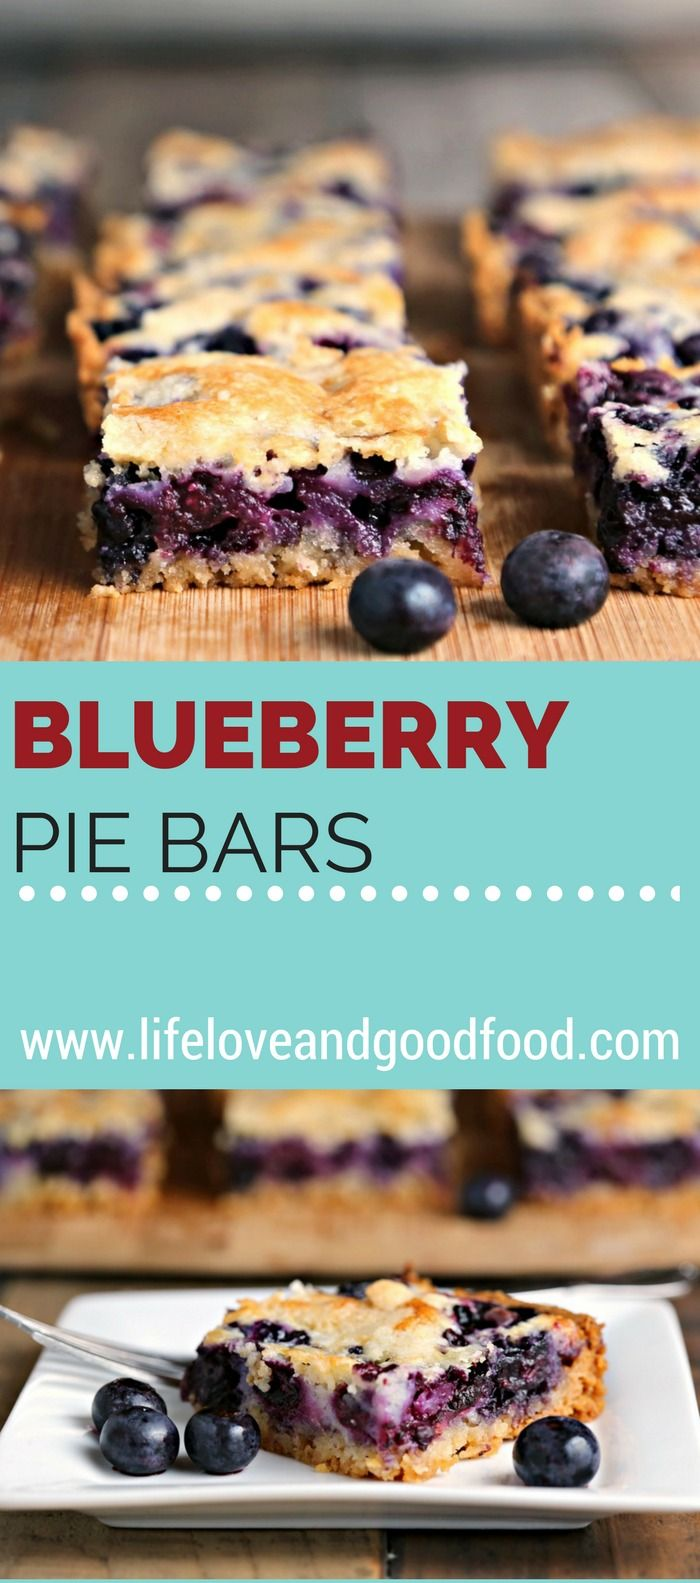 Blueberry Pie Bars | Life, Love, and Good Food #desserts